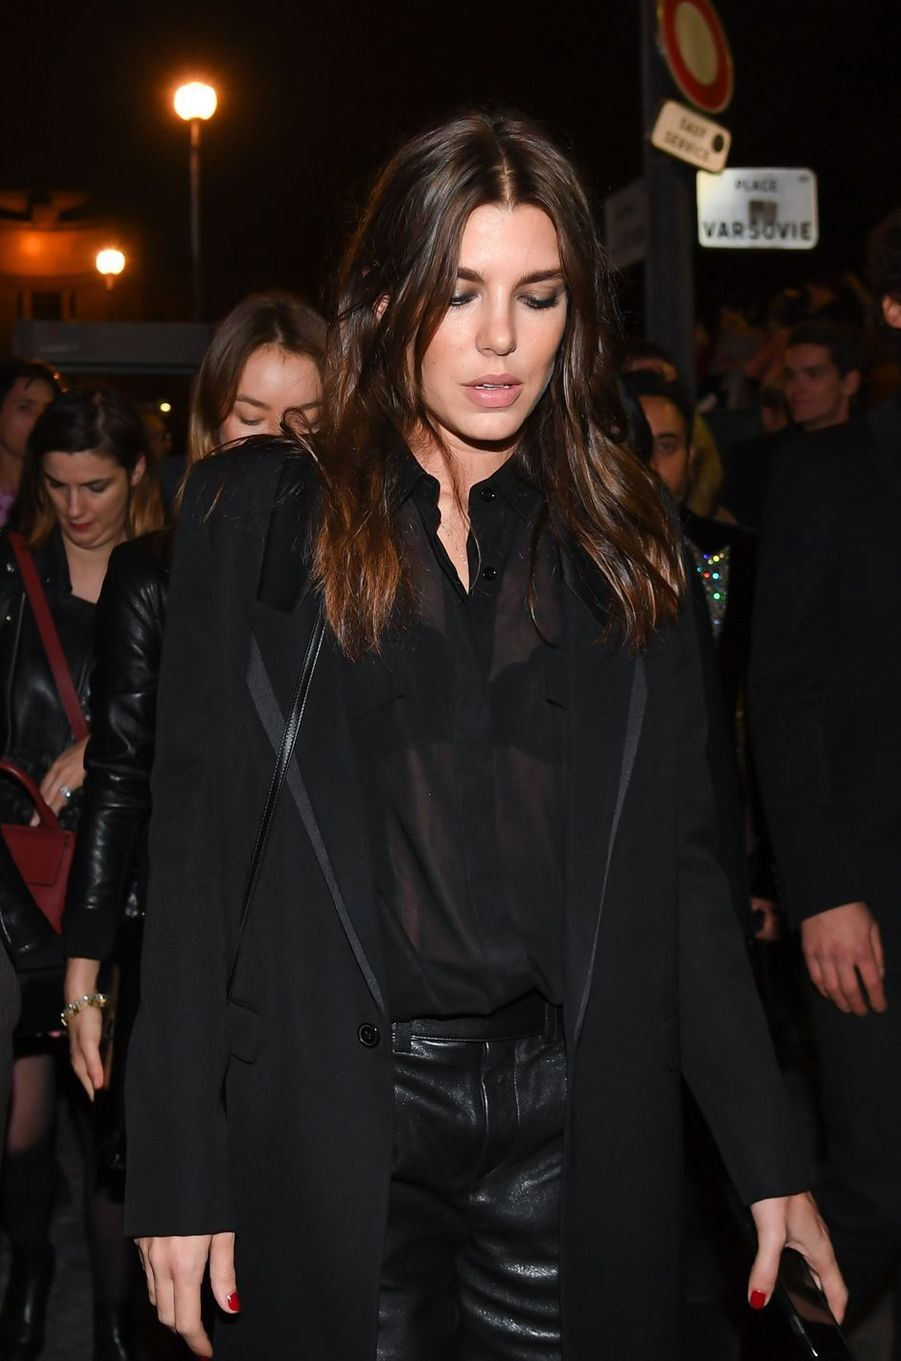 Charlotte Casiraghi au défilé Saint Laurent à Paris, le 26 septembre 2017